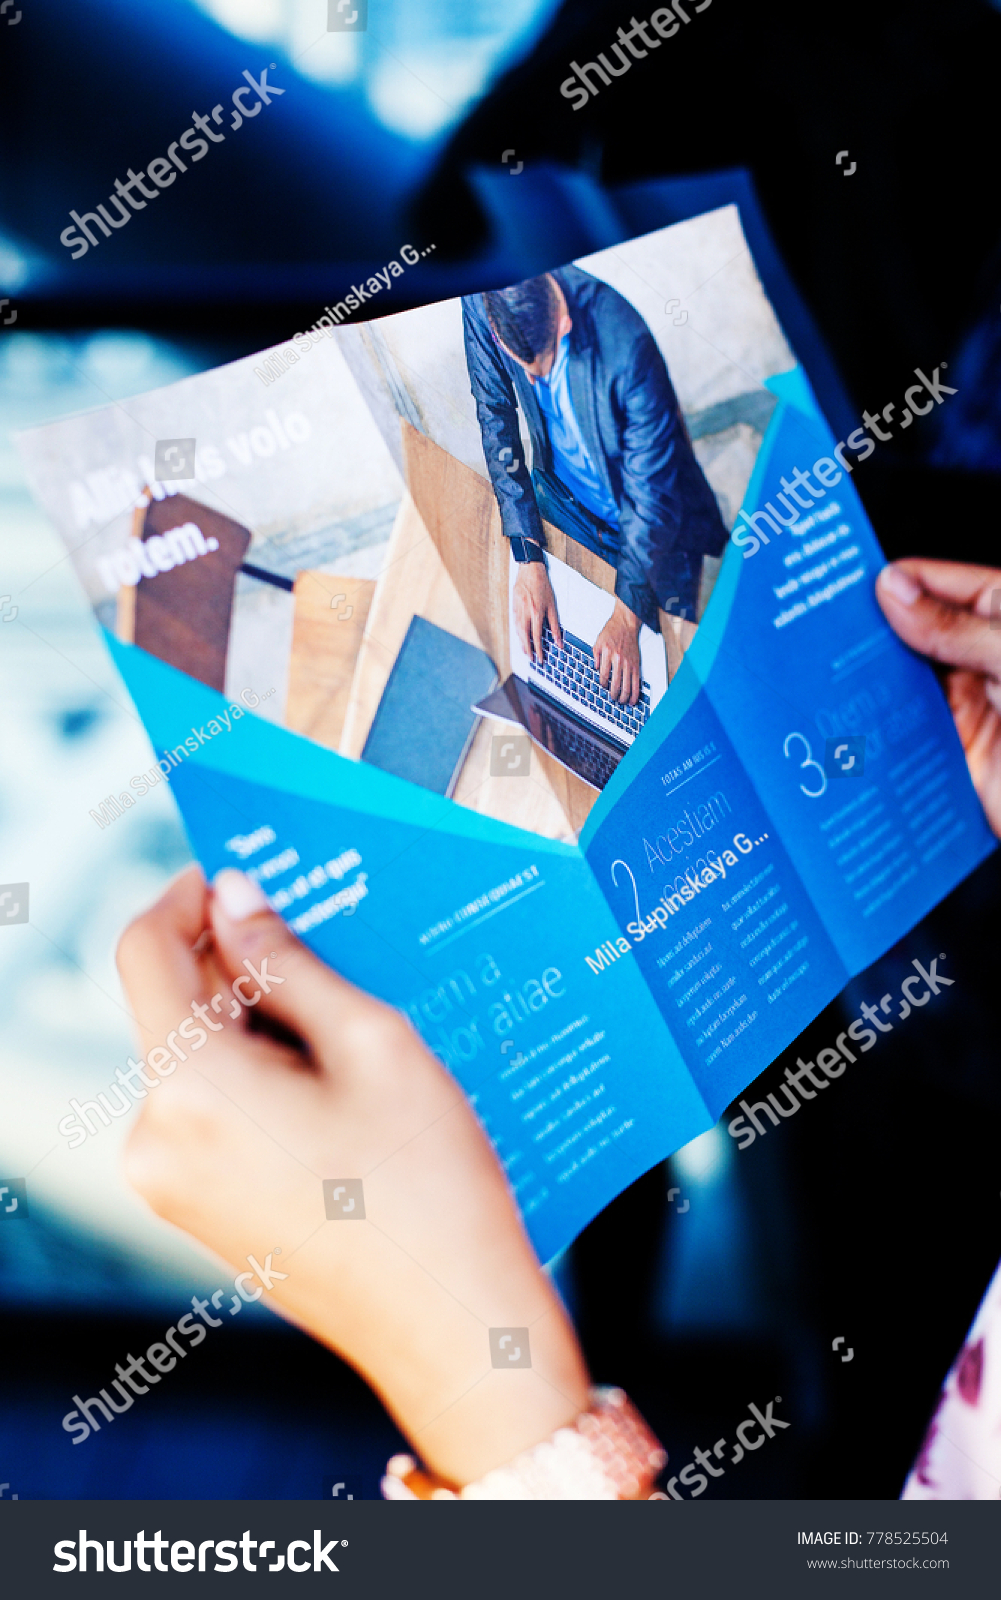 Hands holding a business brochure #778525504